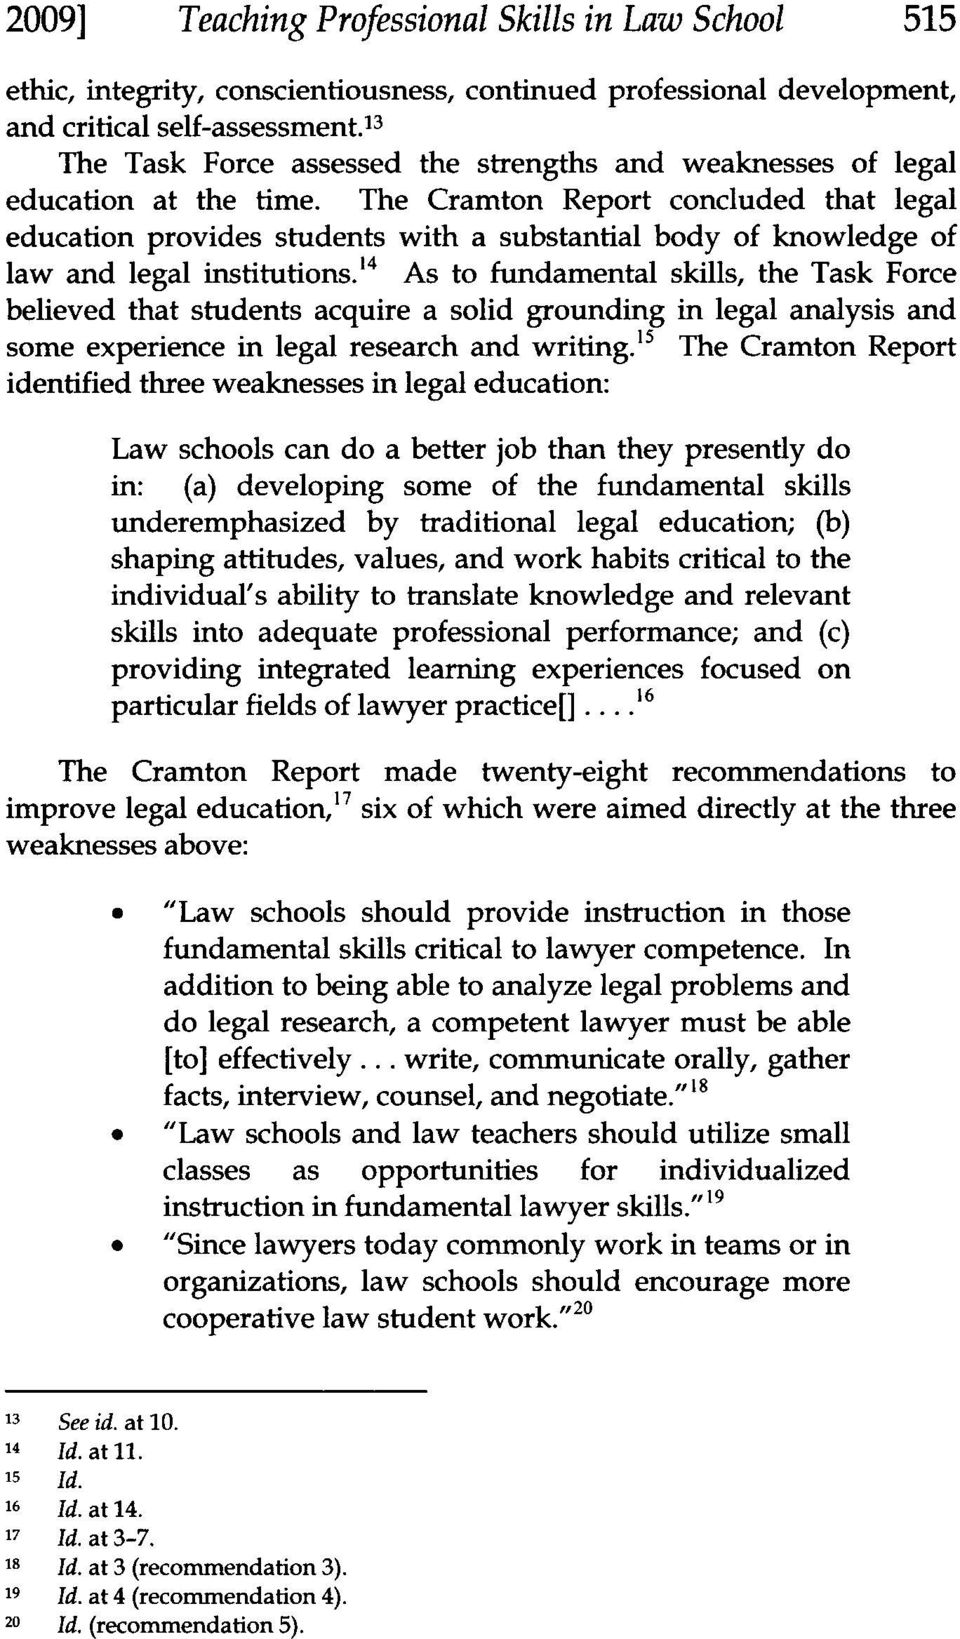 The Cramton Report concluded that legal education provides students with a substantial body of knowledge of law and legal institutions.